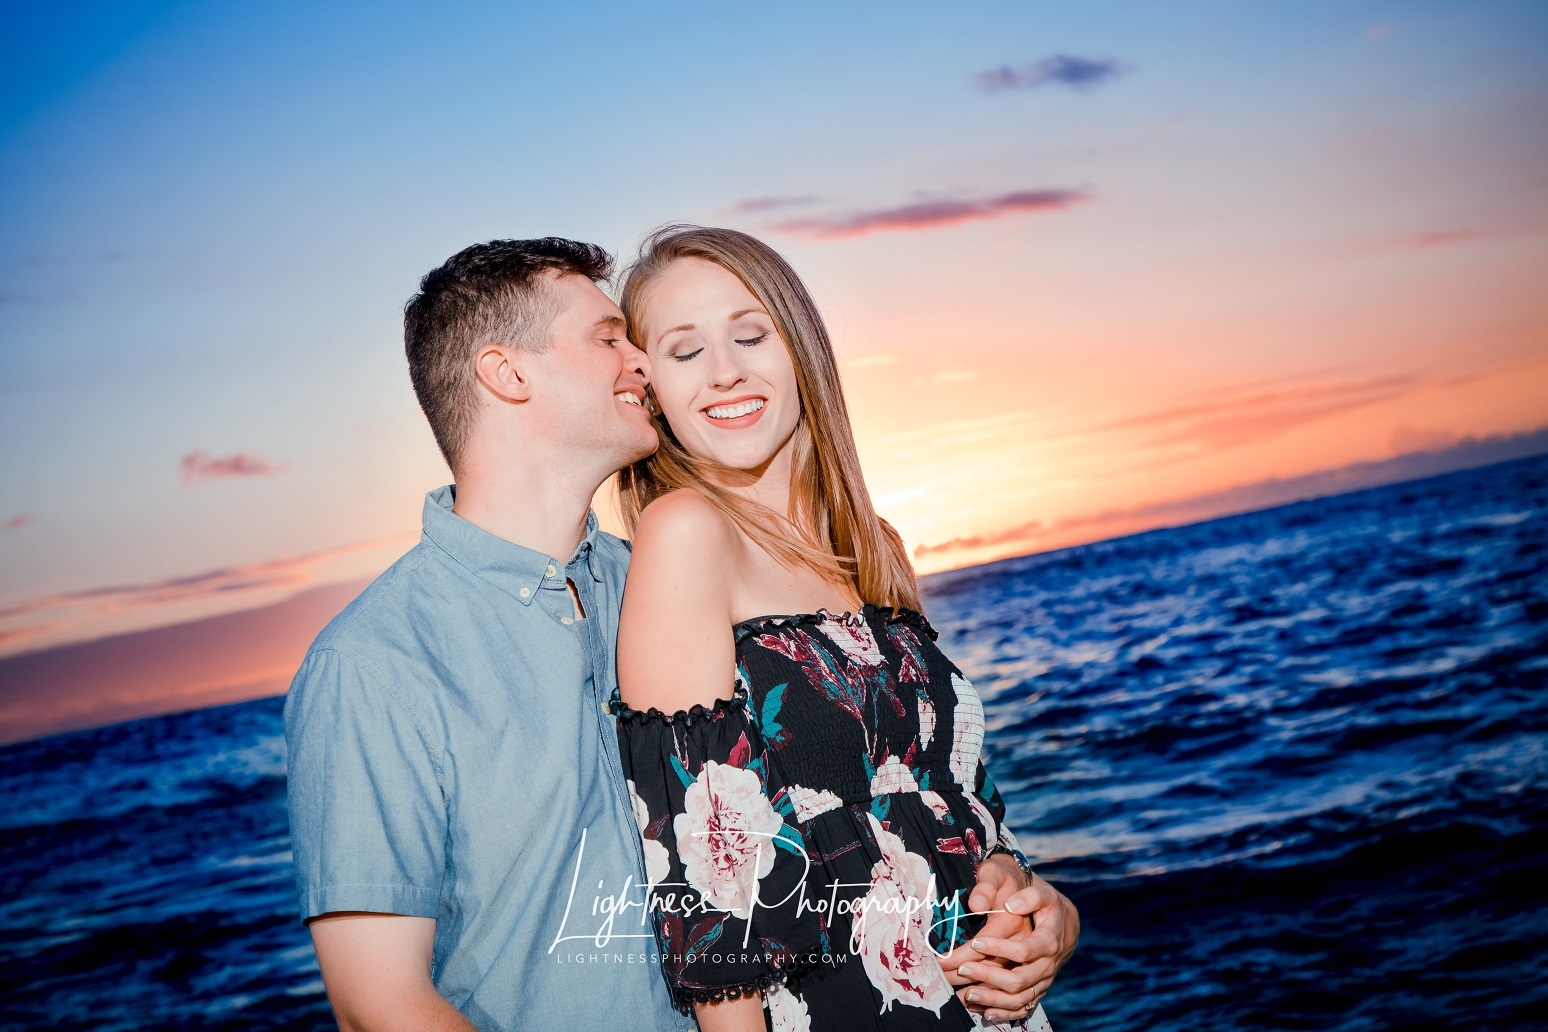 Formal engagement photography session